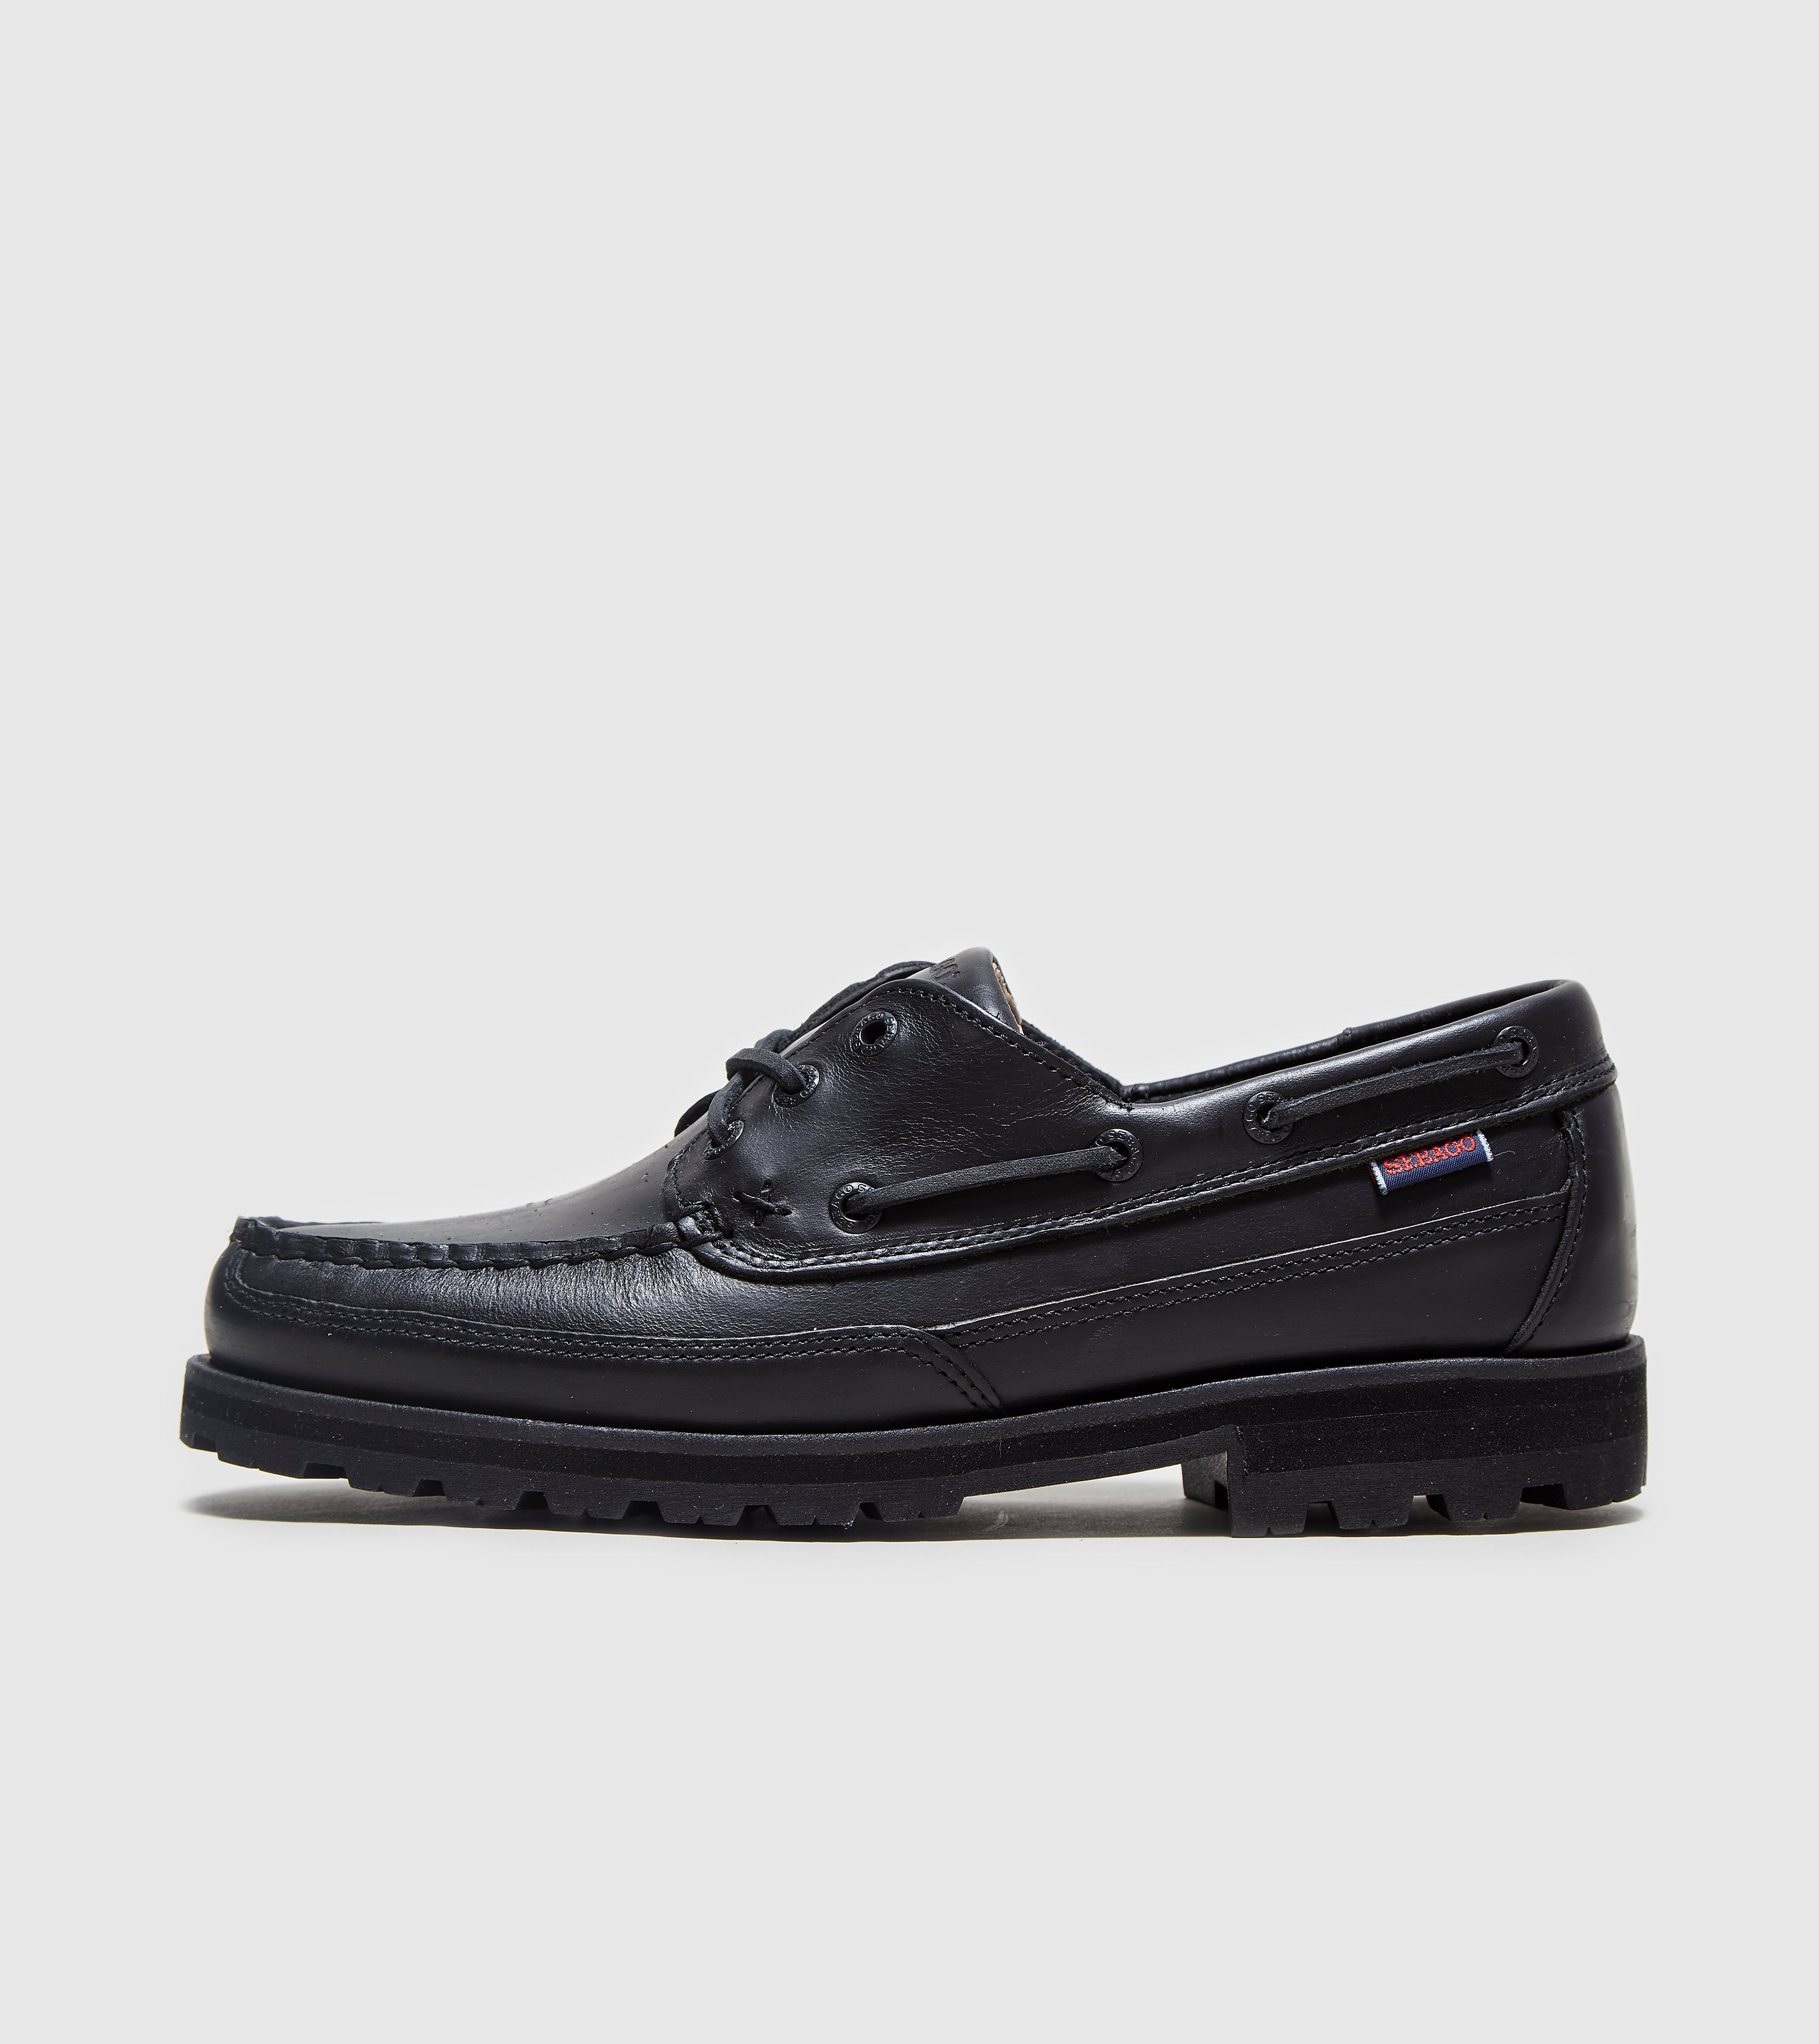 Sebago Vershire 3-Eye Boat Shoes